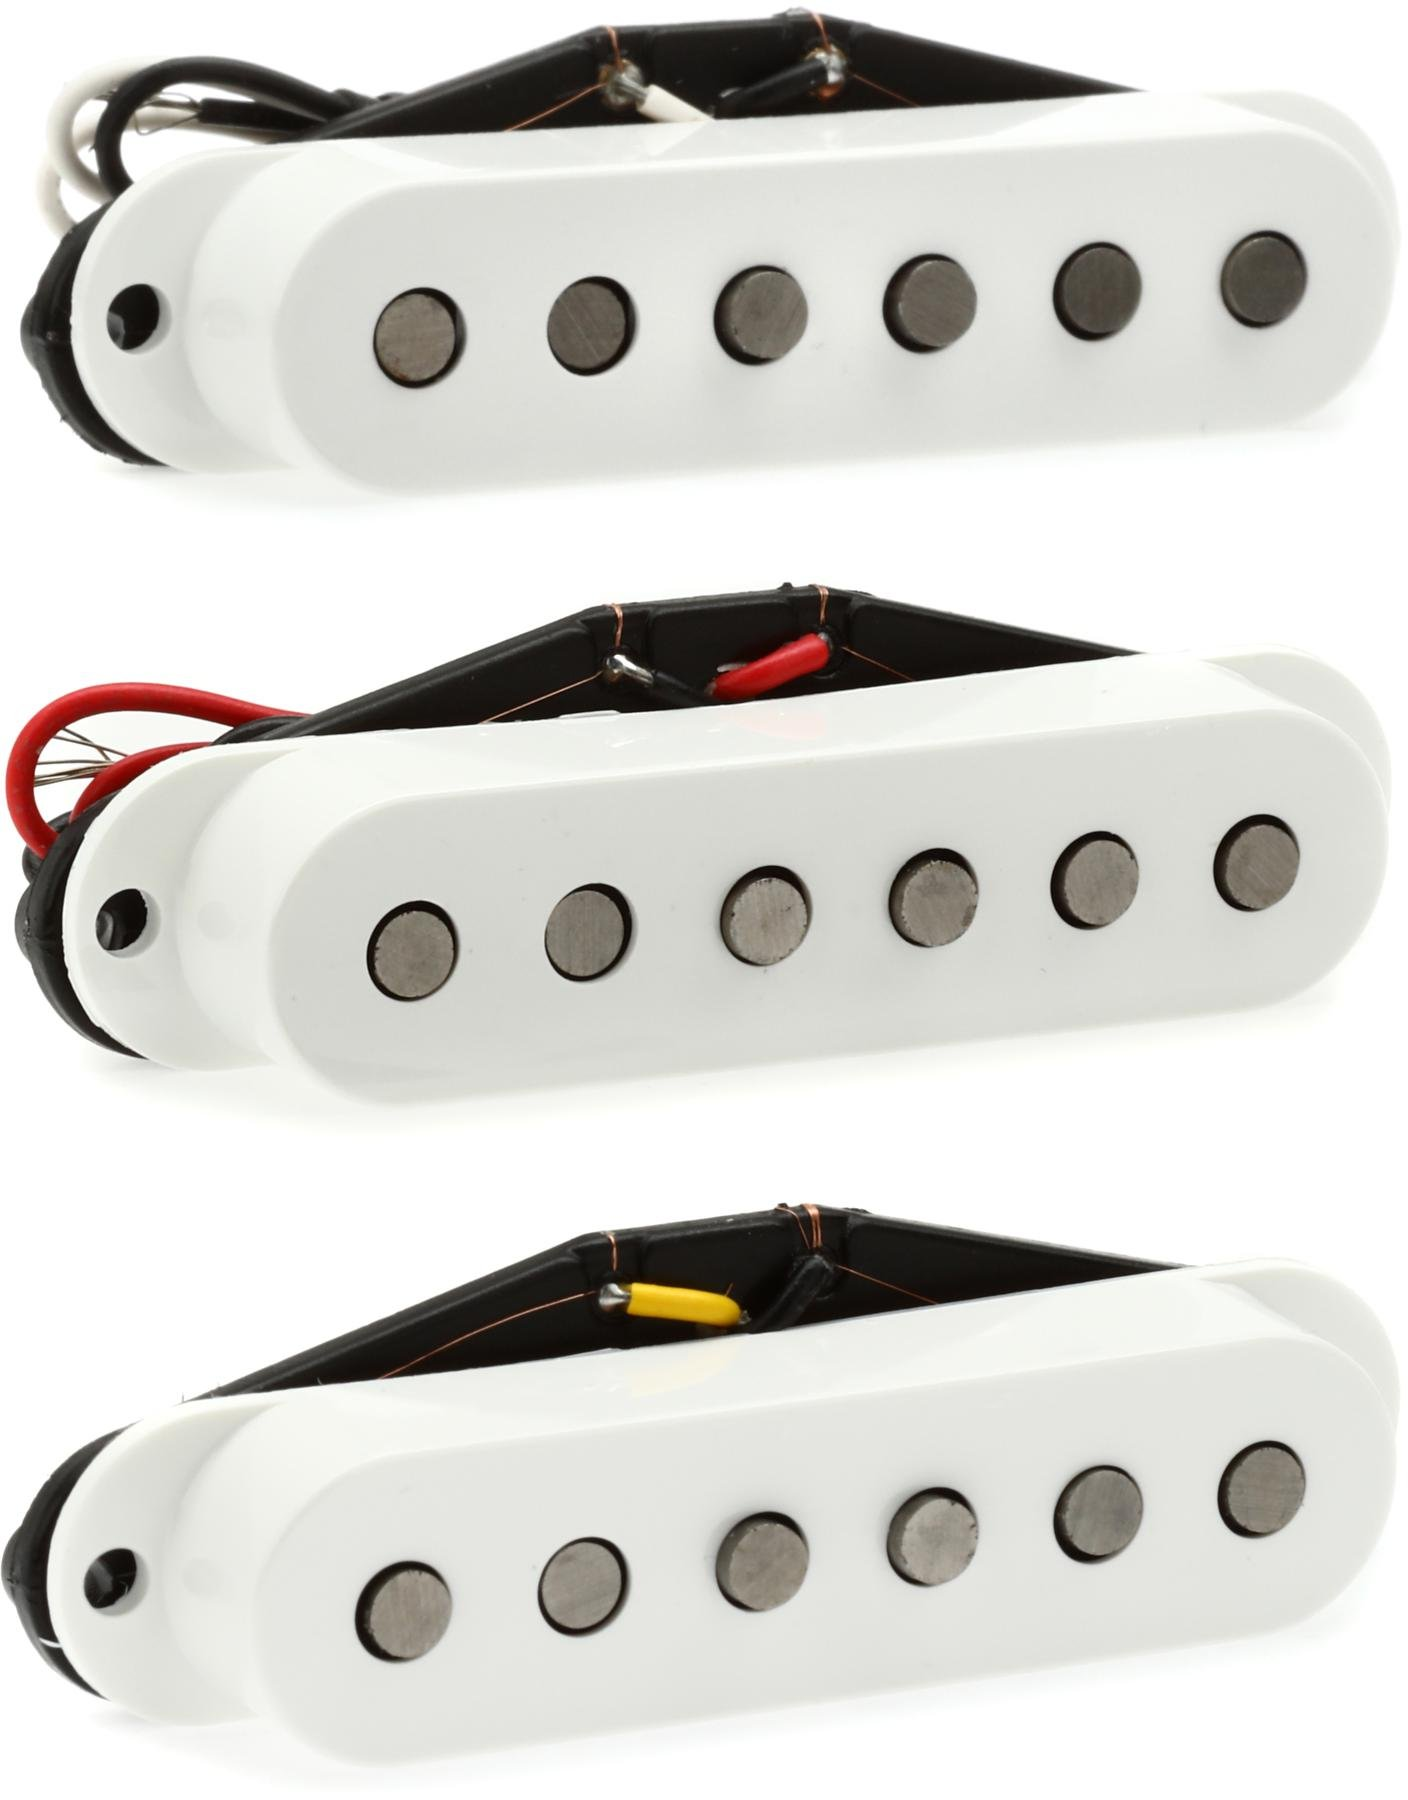 Fender Tex Mex Stratocaster Pickup Set Sweetwater Custom Shop Texas Special Wiring Diagram Image 1